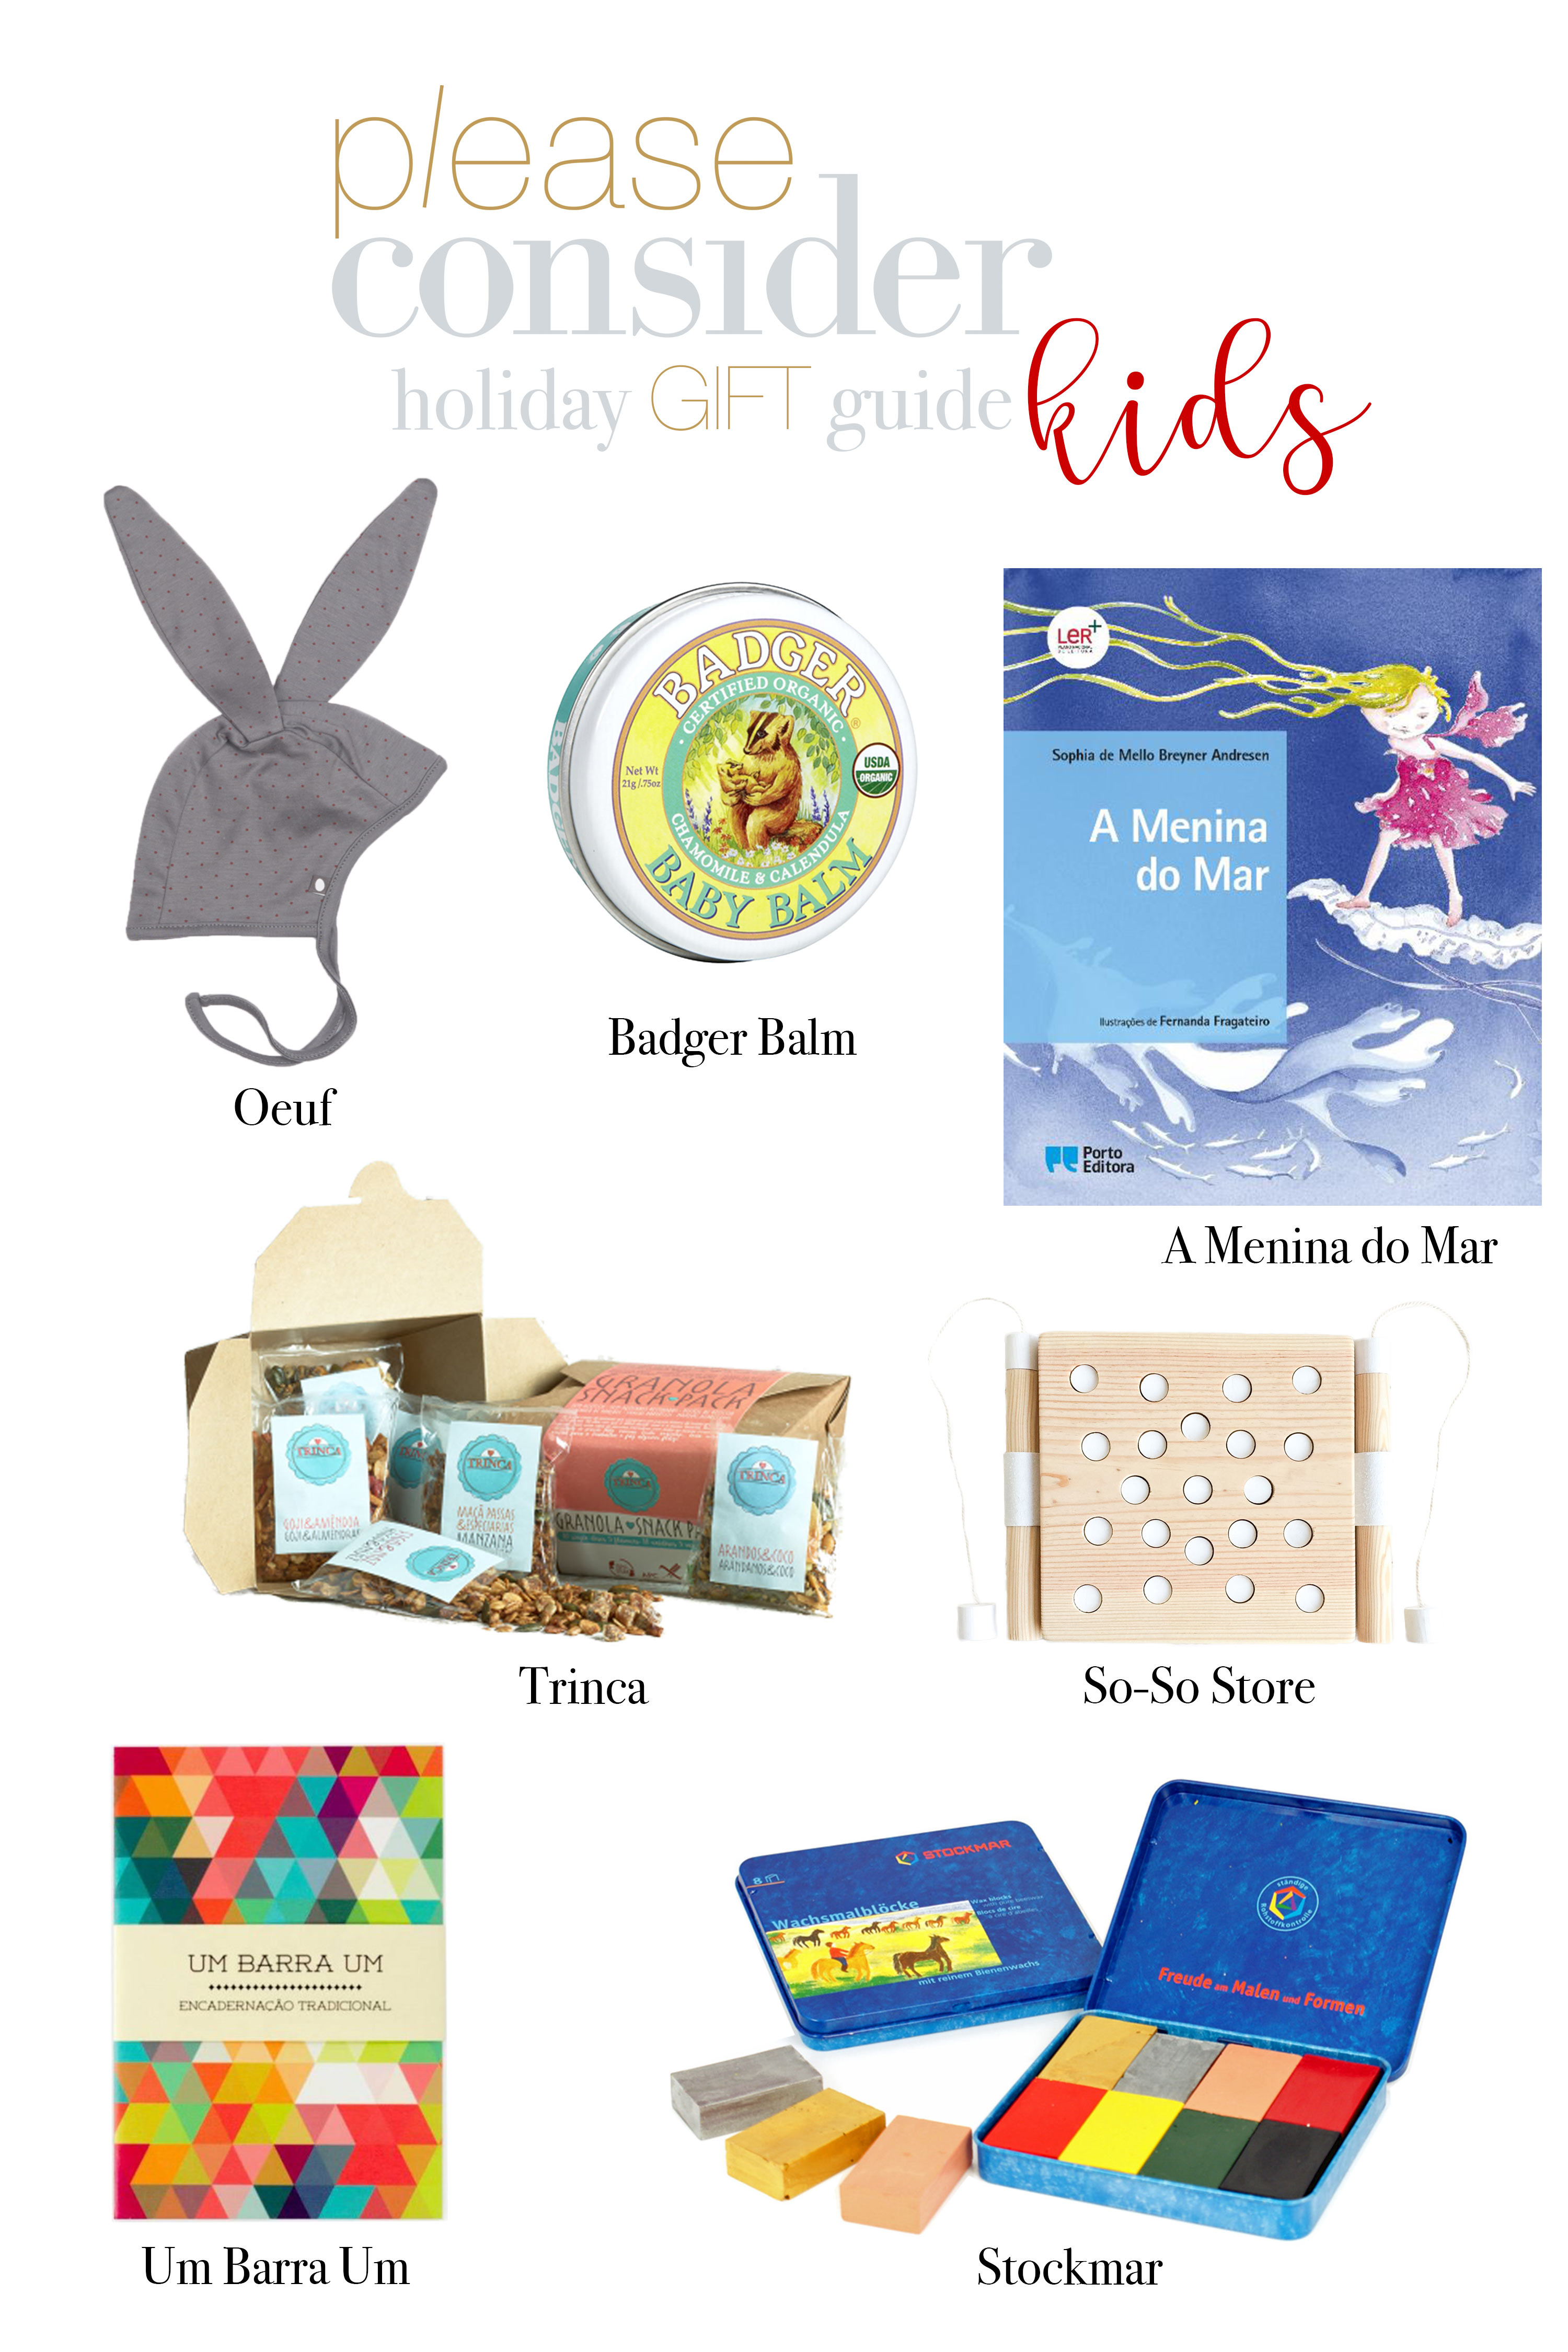 holiday gift guide for the kids | please consider | joana limao